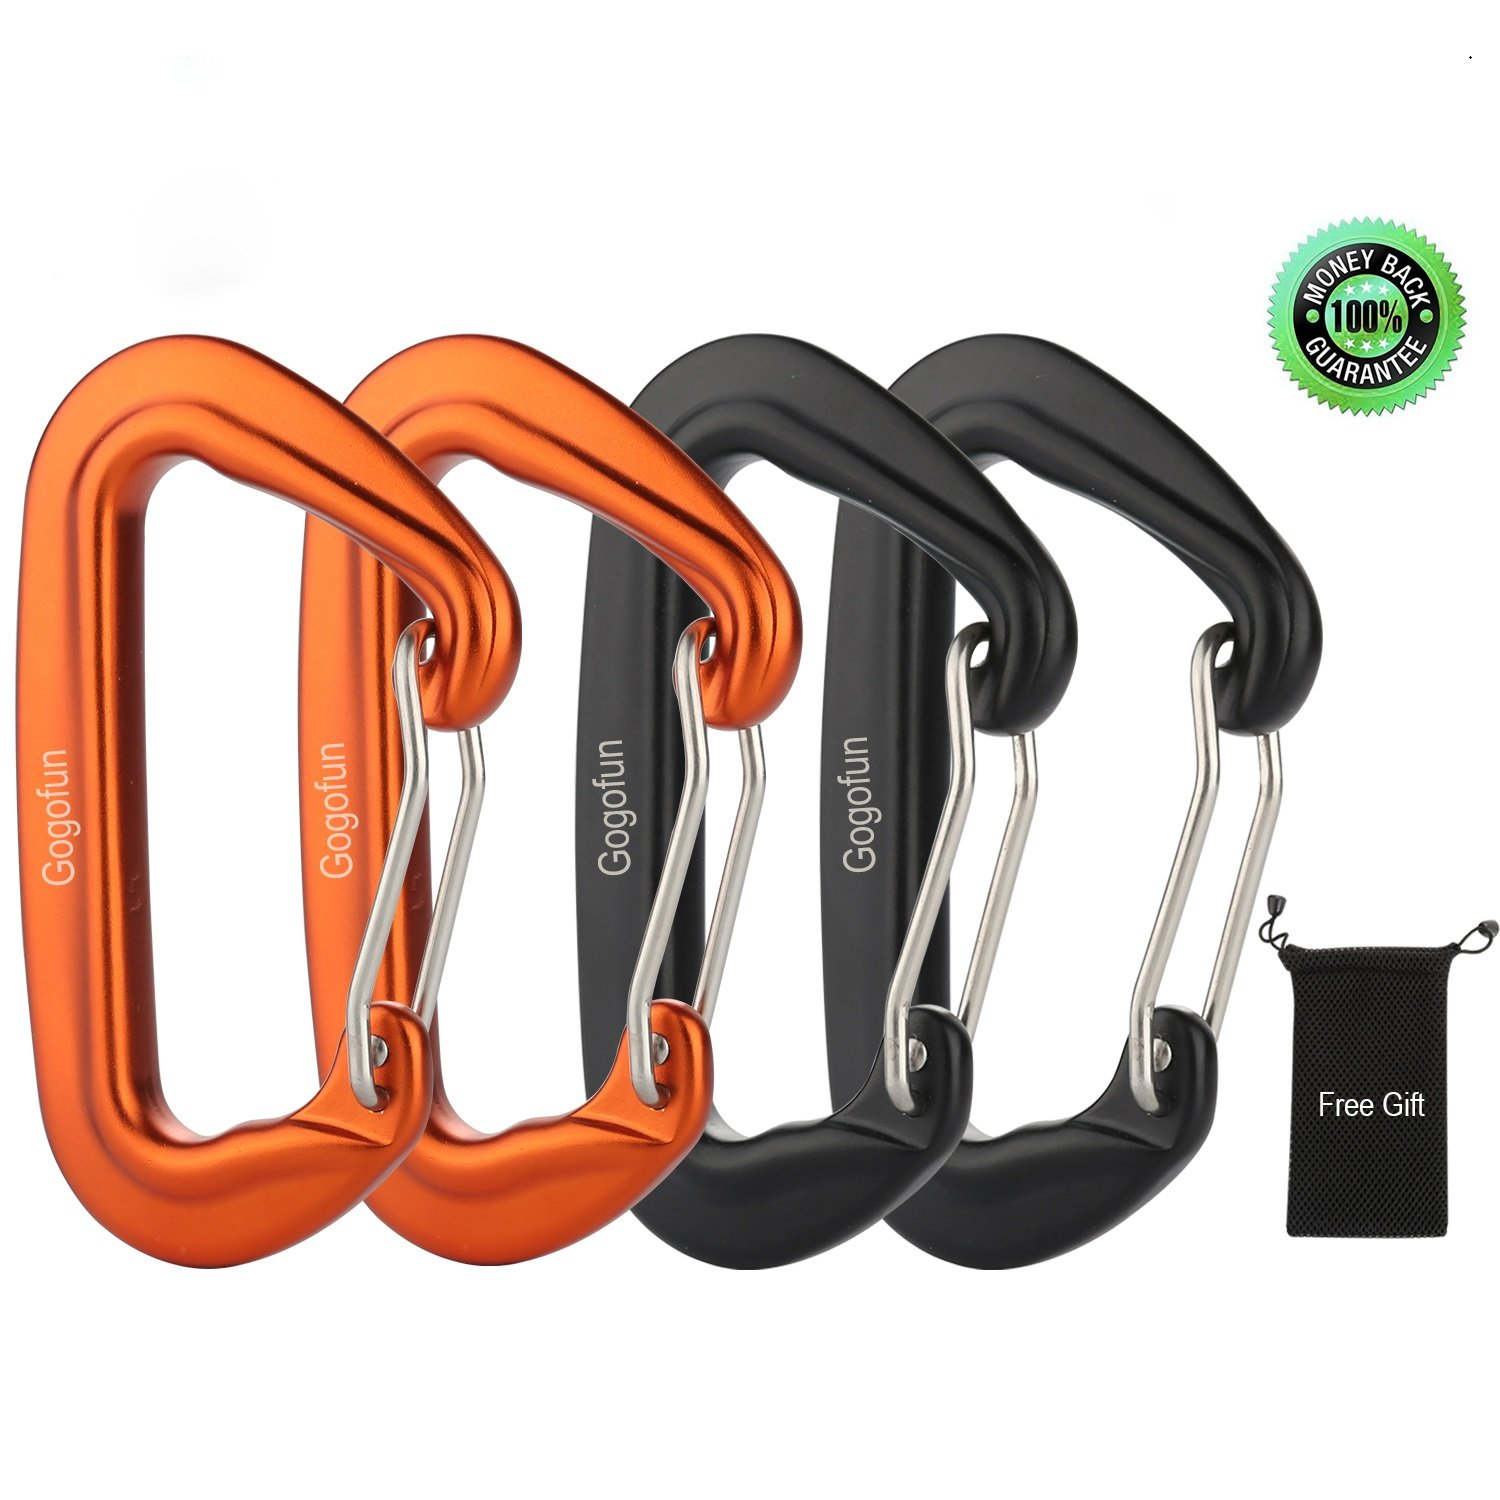 Aluminum Carabiner 24KN Heavy Duty Carabiner Rated 5395 lbs D Shape Lightweight Aircraft Grade 7075 Aluminum Material Snag Free Clip Keychain for Hammock Swing Chair Camping Fishing (24KN 4 Pack)